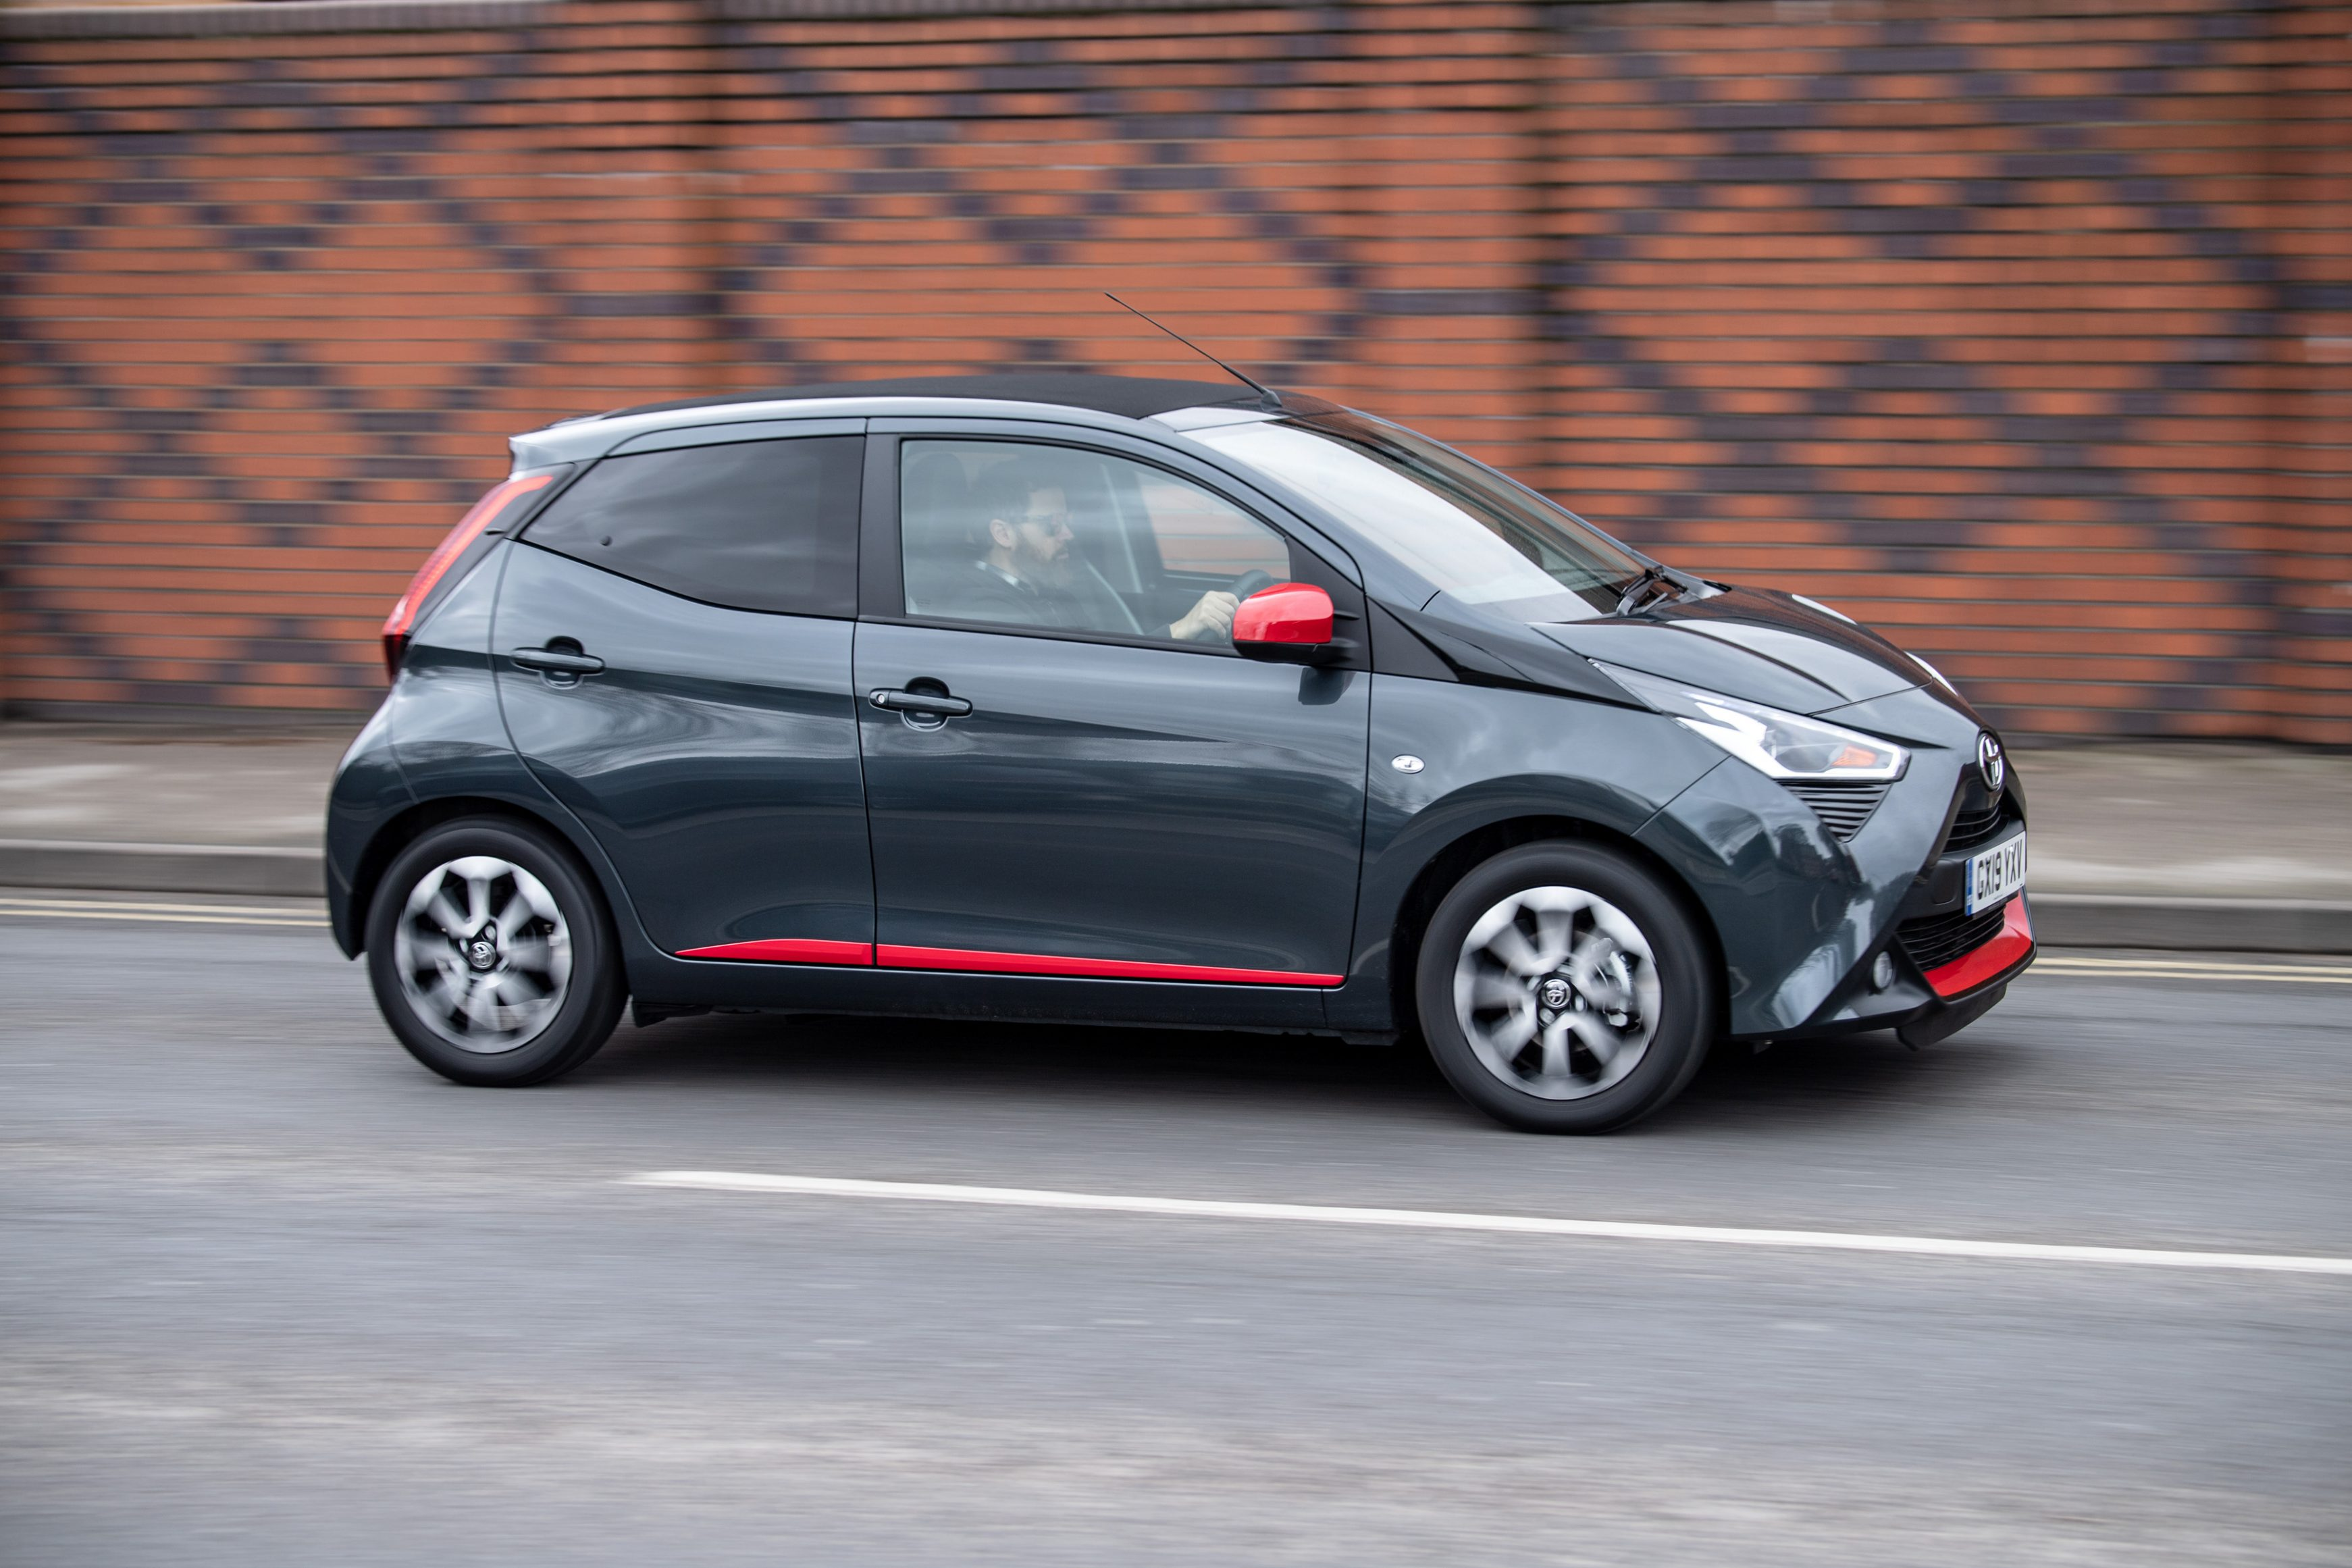 Just like its styling, the Toyota Aygo is fun and agile to drive